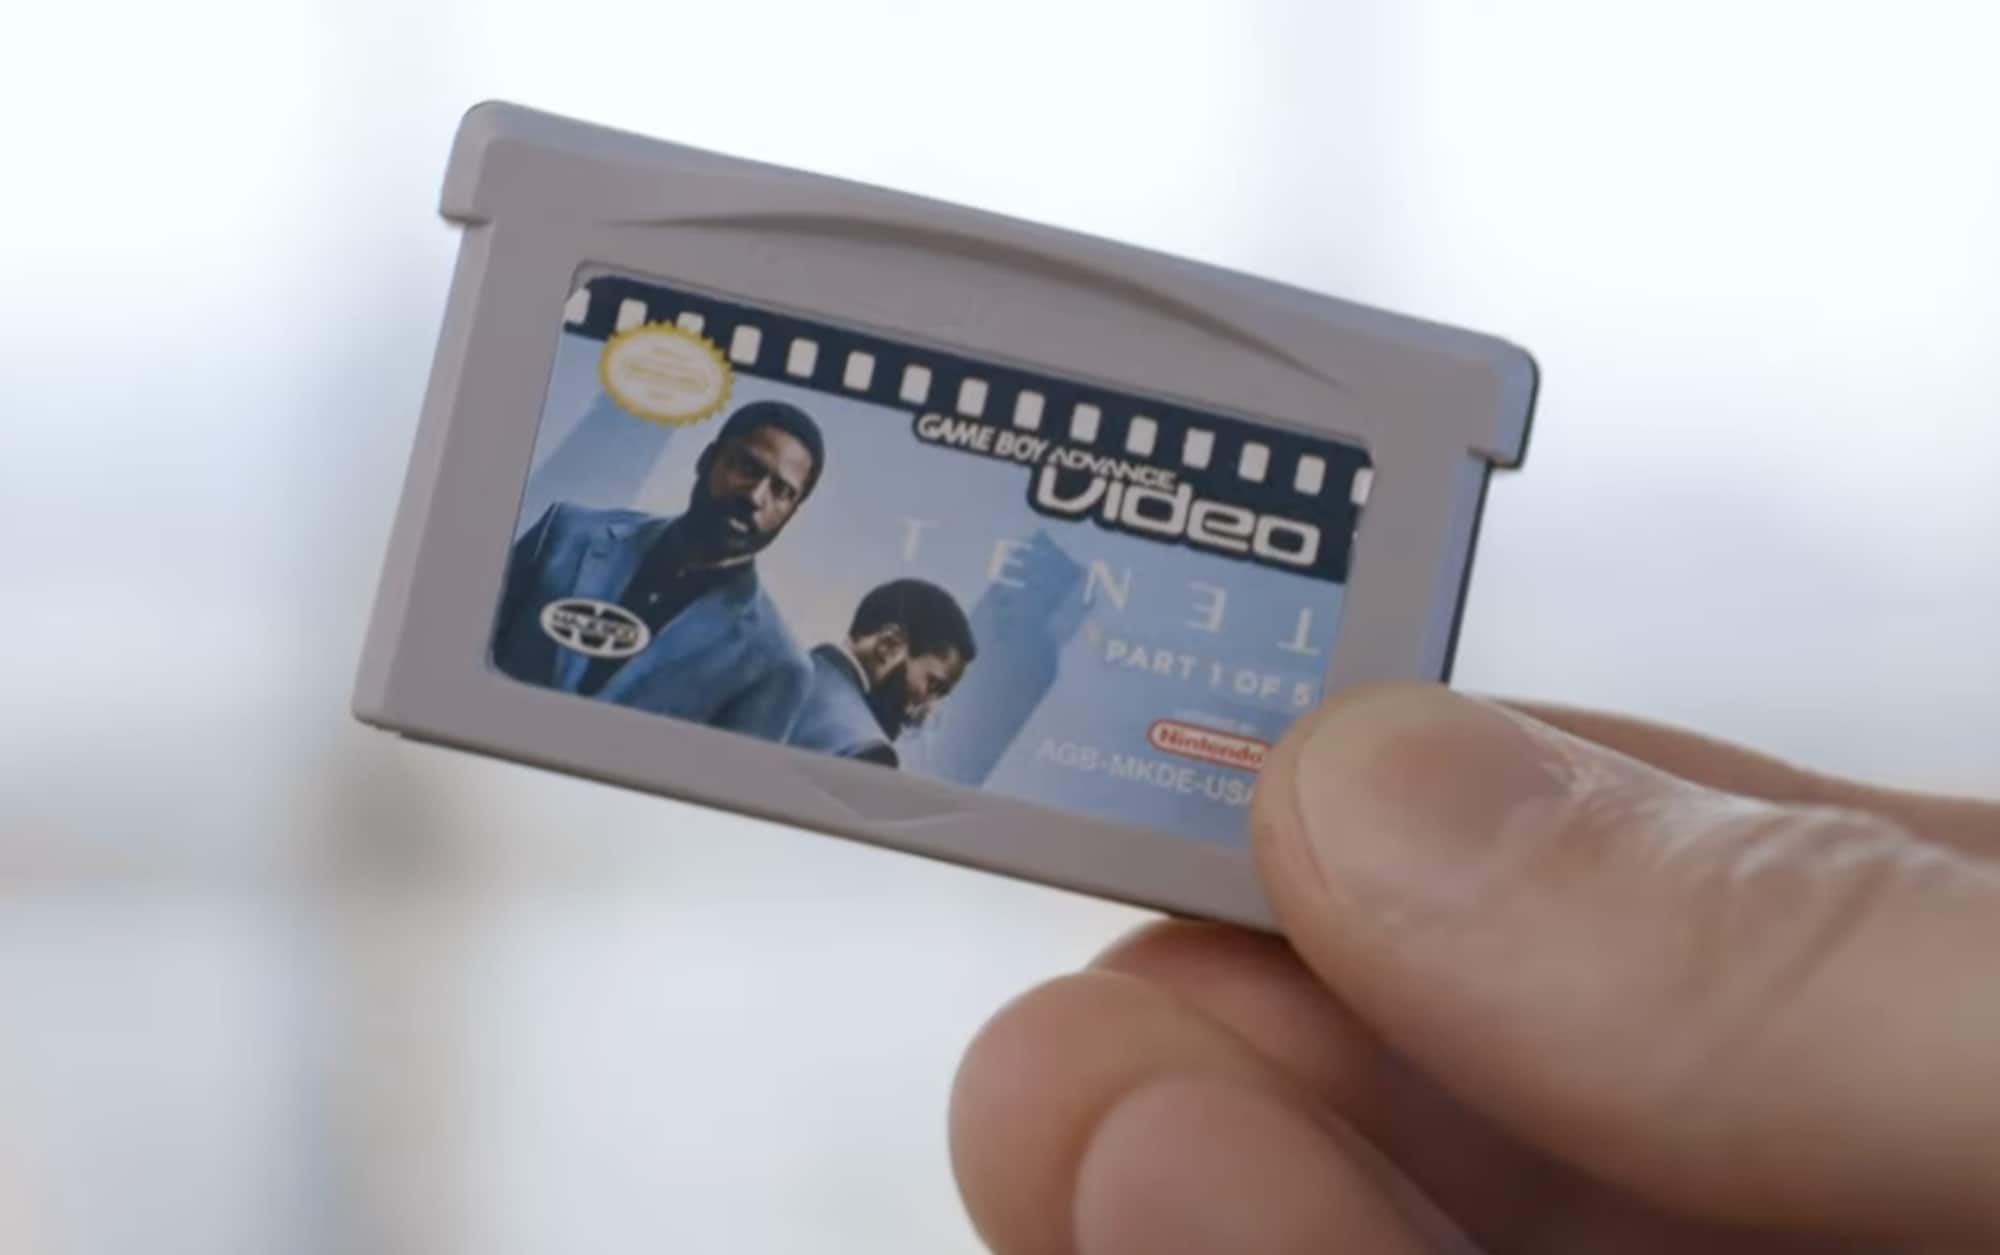 A YouTuber split up the movie Tenet across five Game Boy Advance cartridges to experience the move in the worst way possible